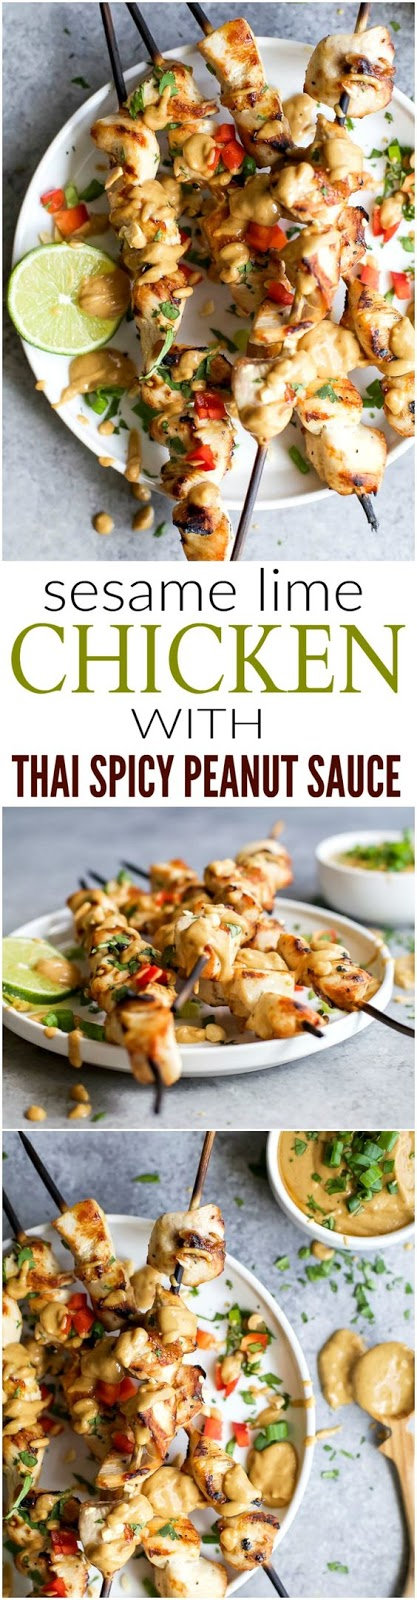 Sesame Lime Chicken Kebabs with a Spicy Peanut Sauce